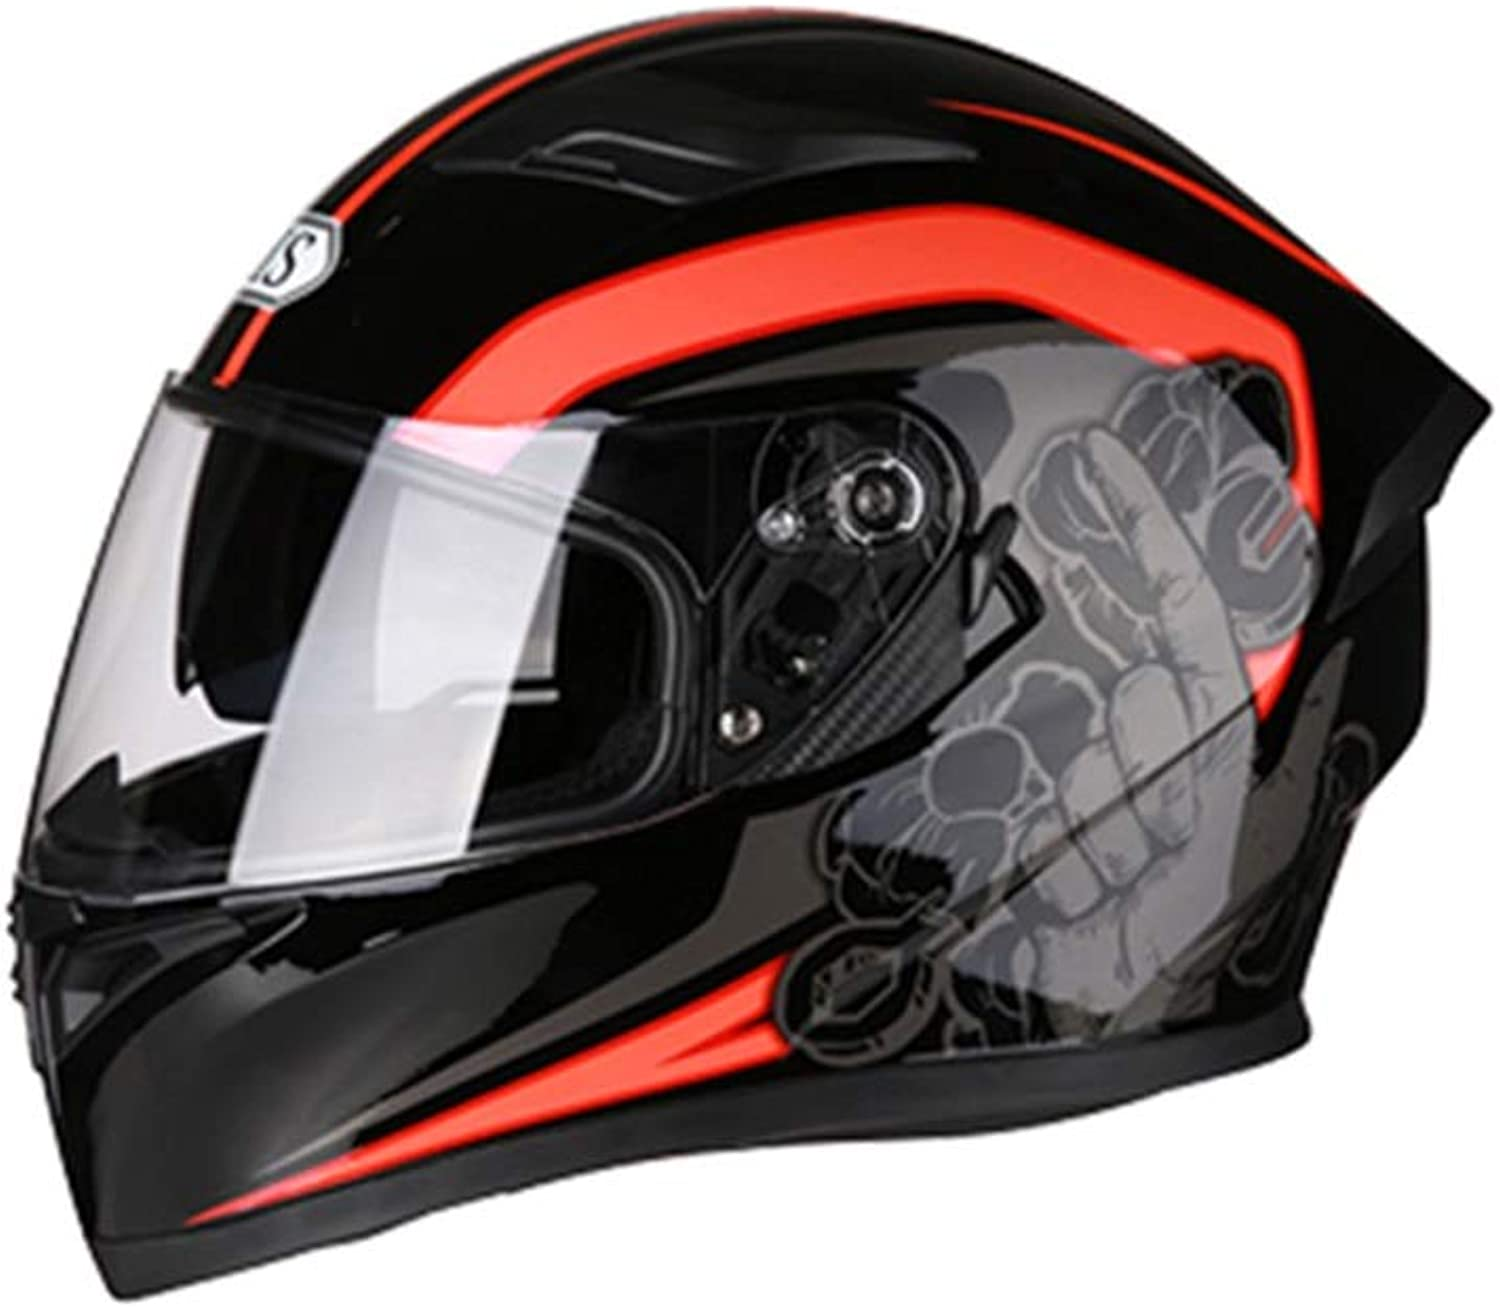 Lanbinxiang@ Men's and Women's Motorcycle Simple Helmet Full Face Helmet with A Corner Four Seasons Summer Hat Locomotive Personality Pattern  Black Red Personality Pattern  Large Predection